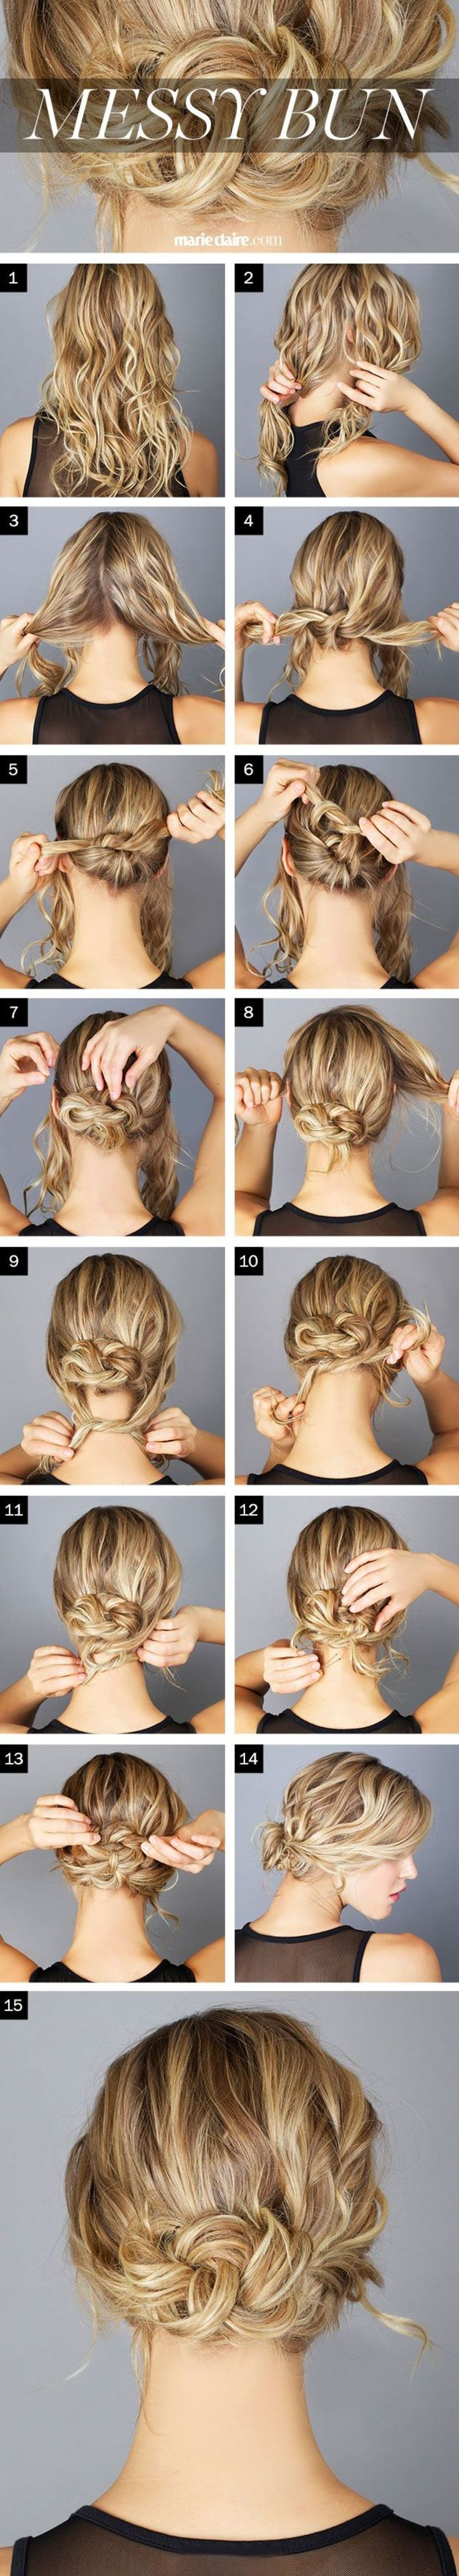 Hair How-To: The Messy Bun // did this today - it looks great! and it was so easy.